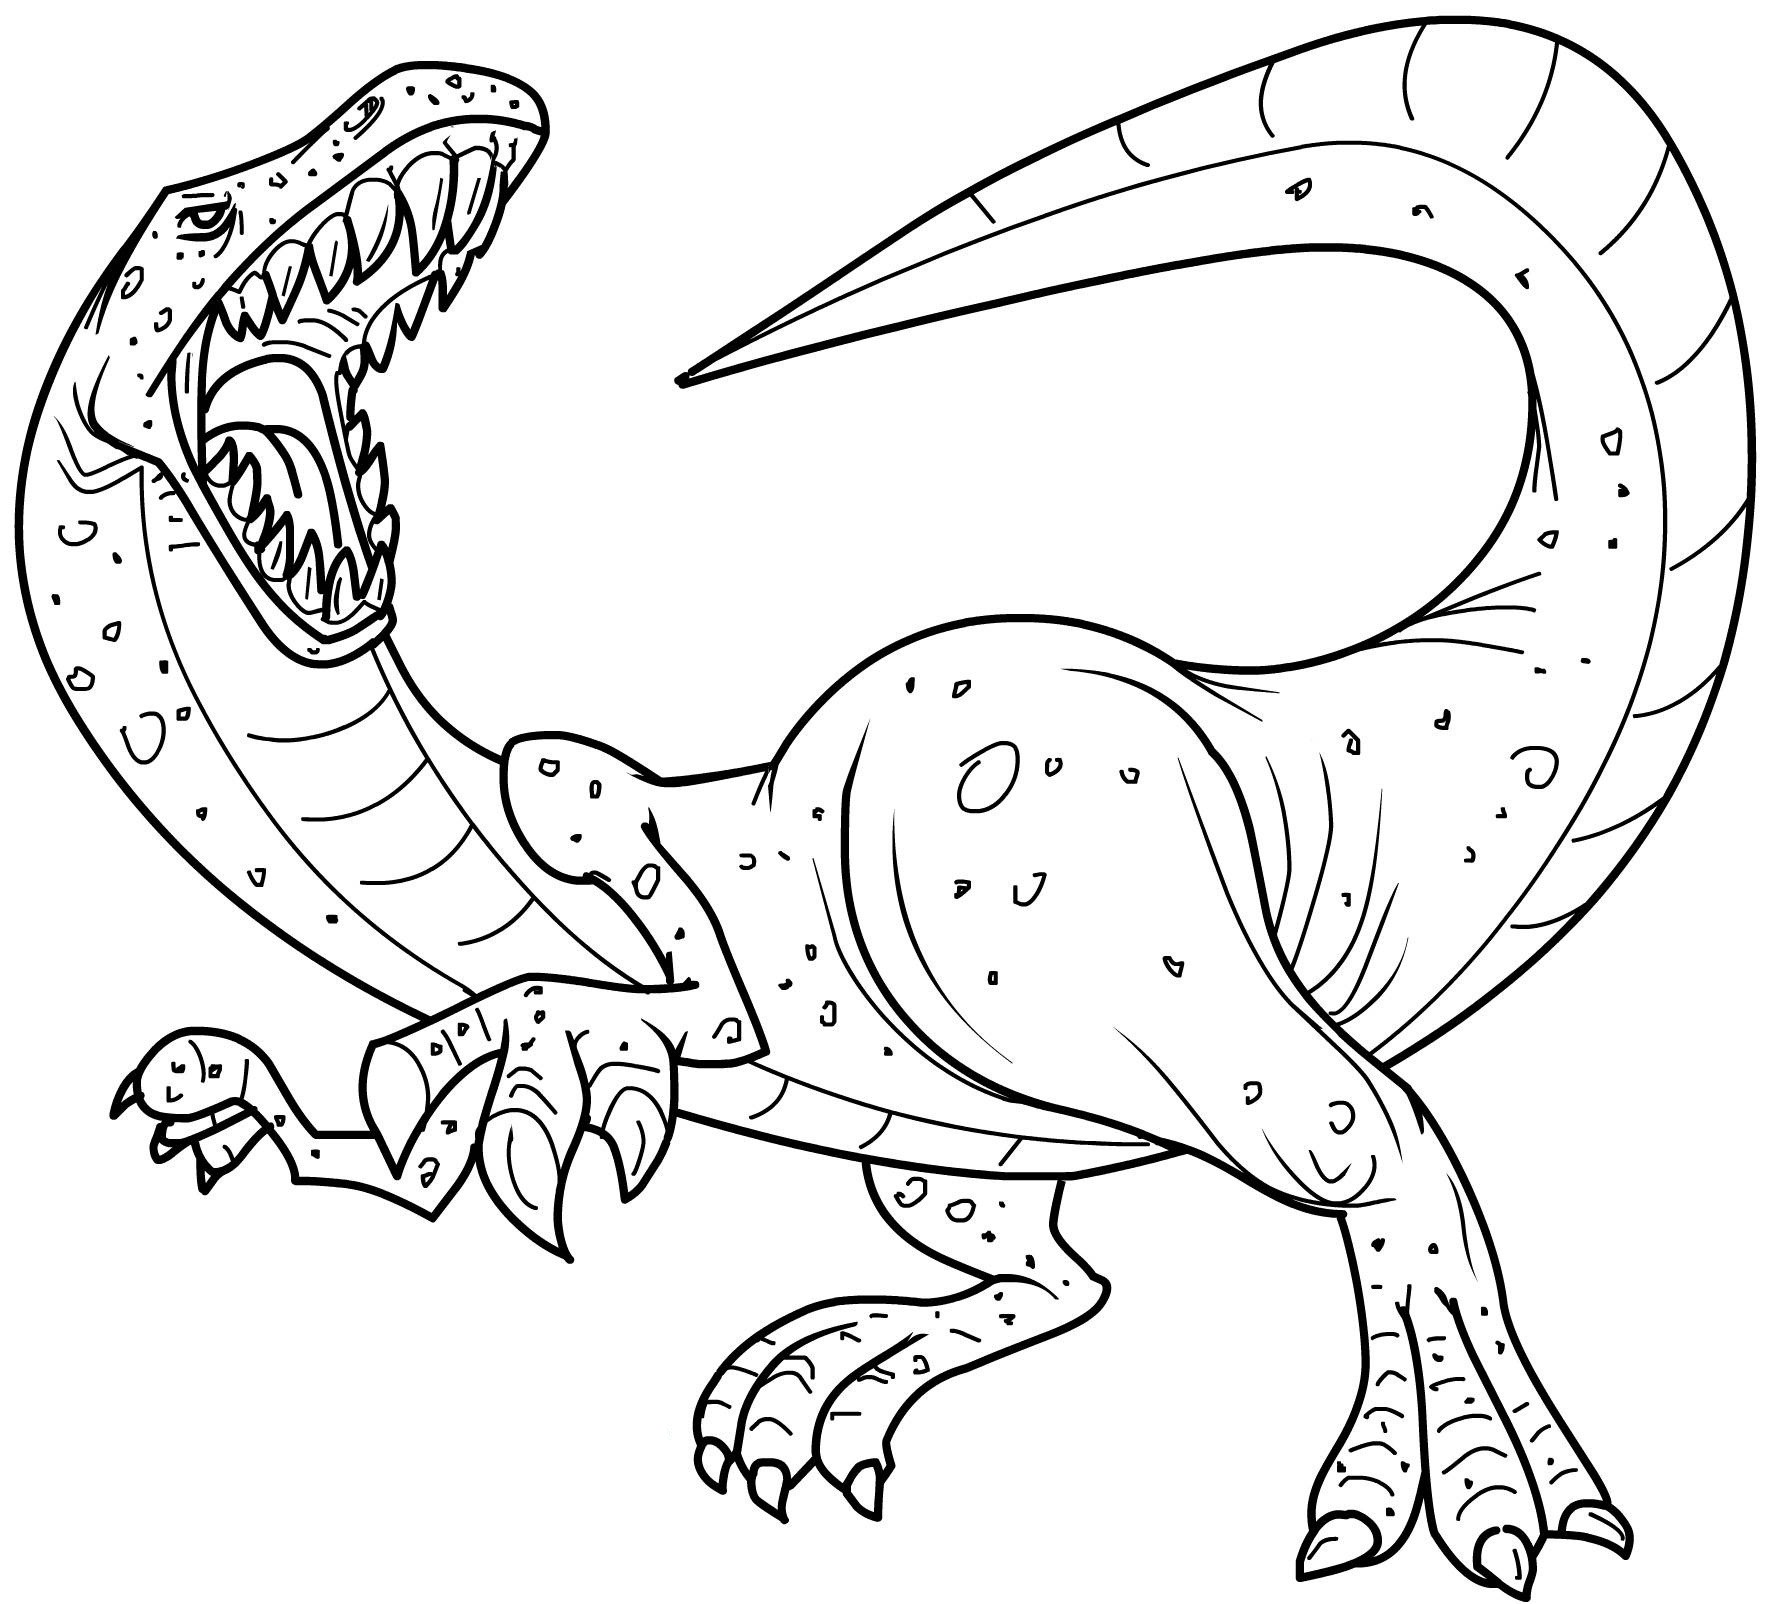 dinasaur coloring pages - photo#17